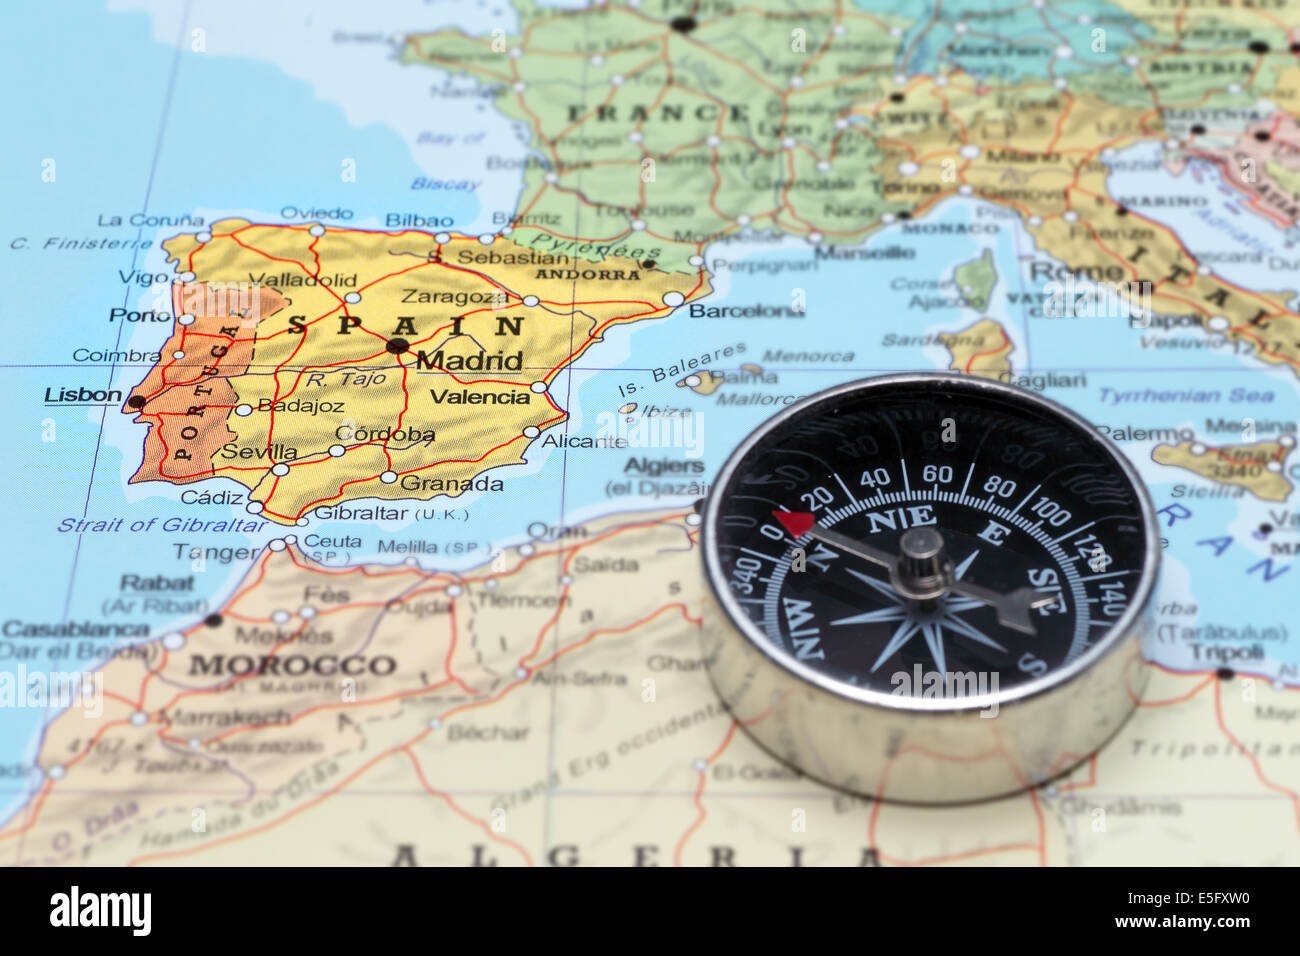 compass on a map pointing at spain and planning a travel destination